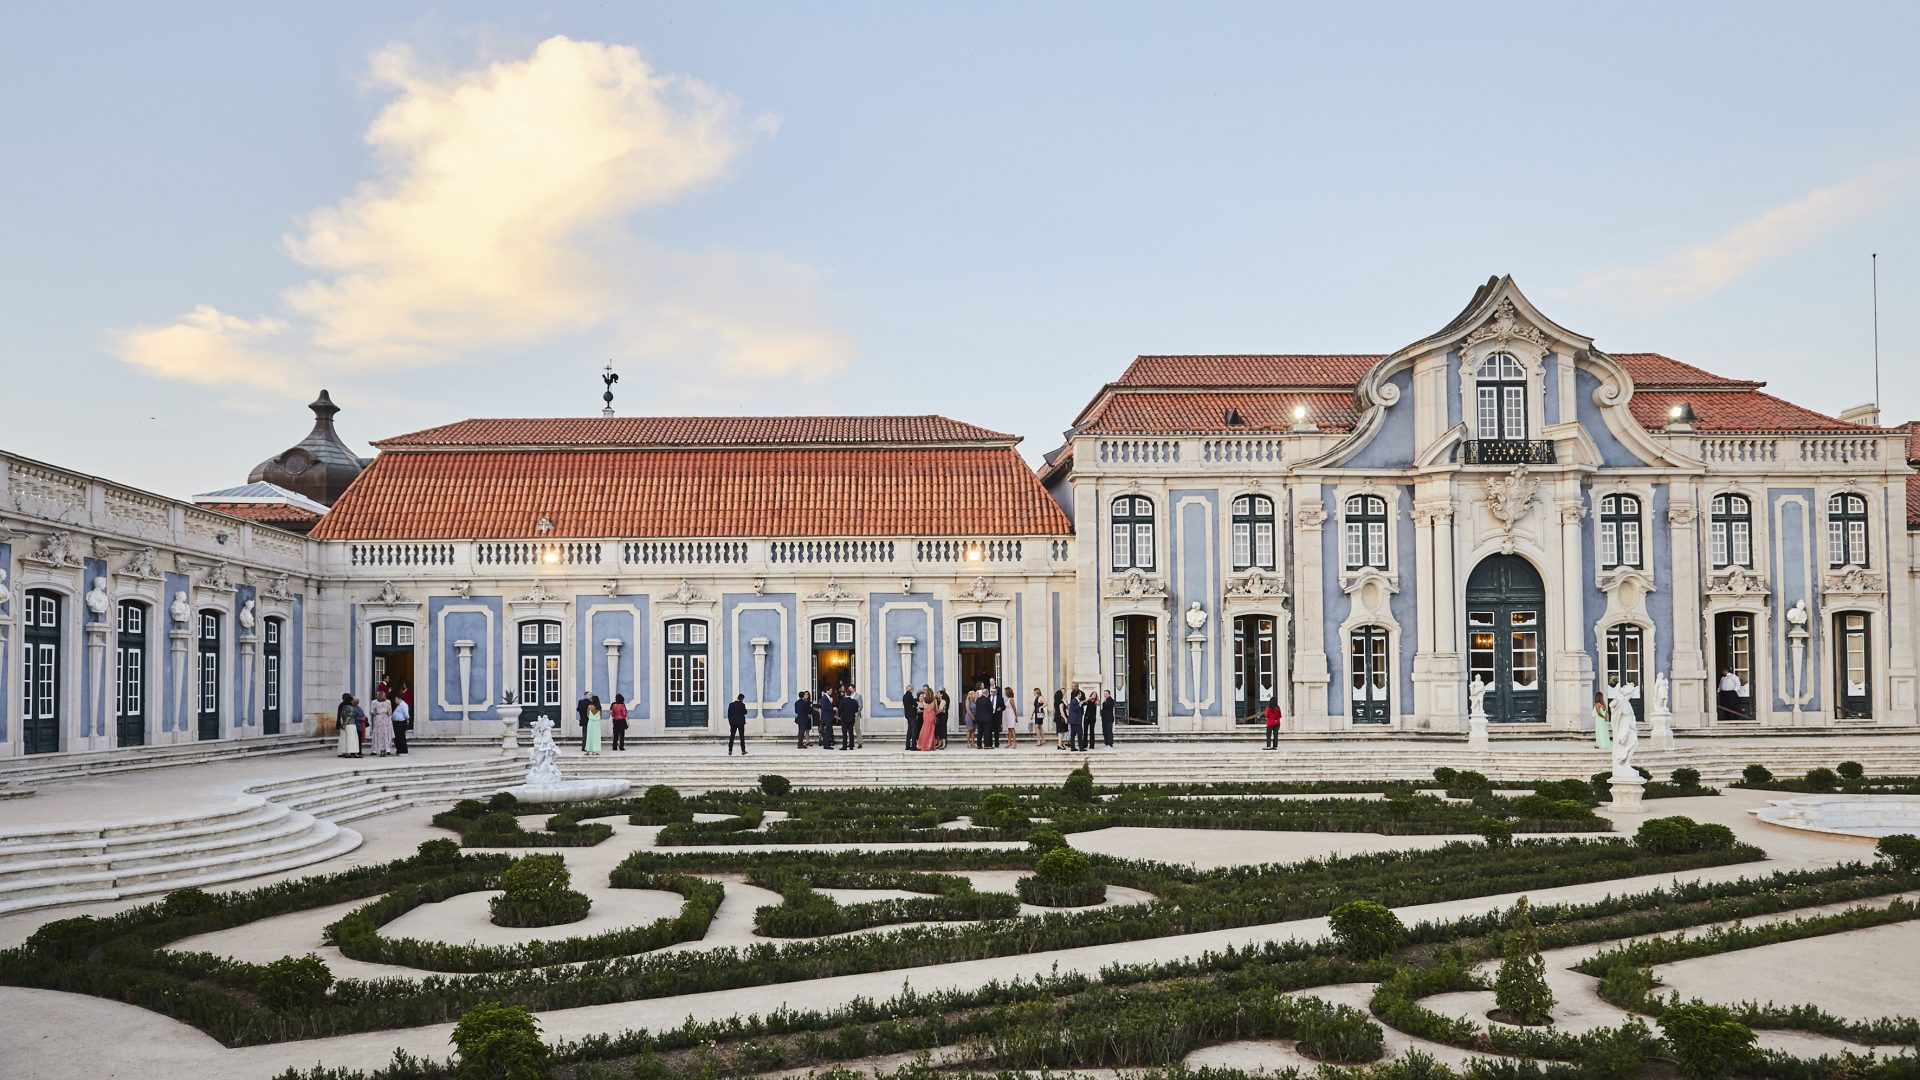 Lisbon palace with French gardens - a venue for events